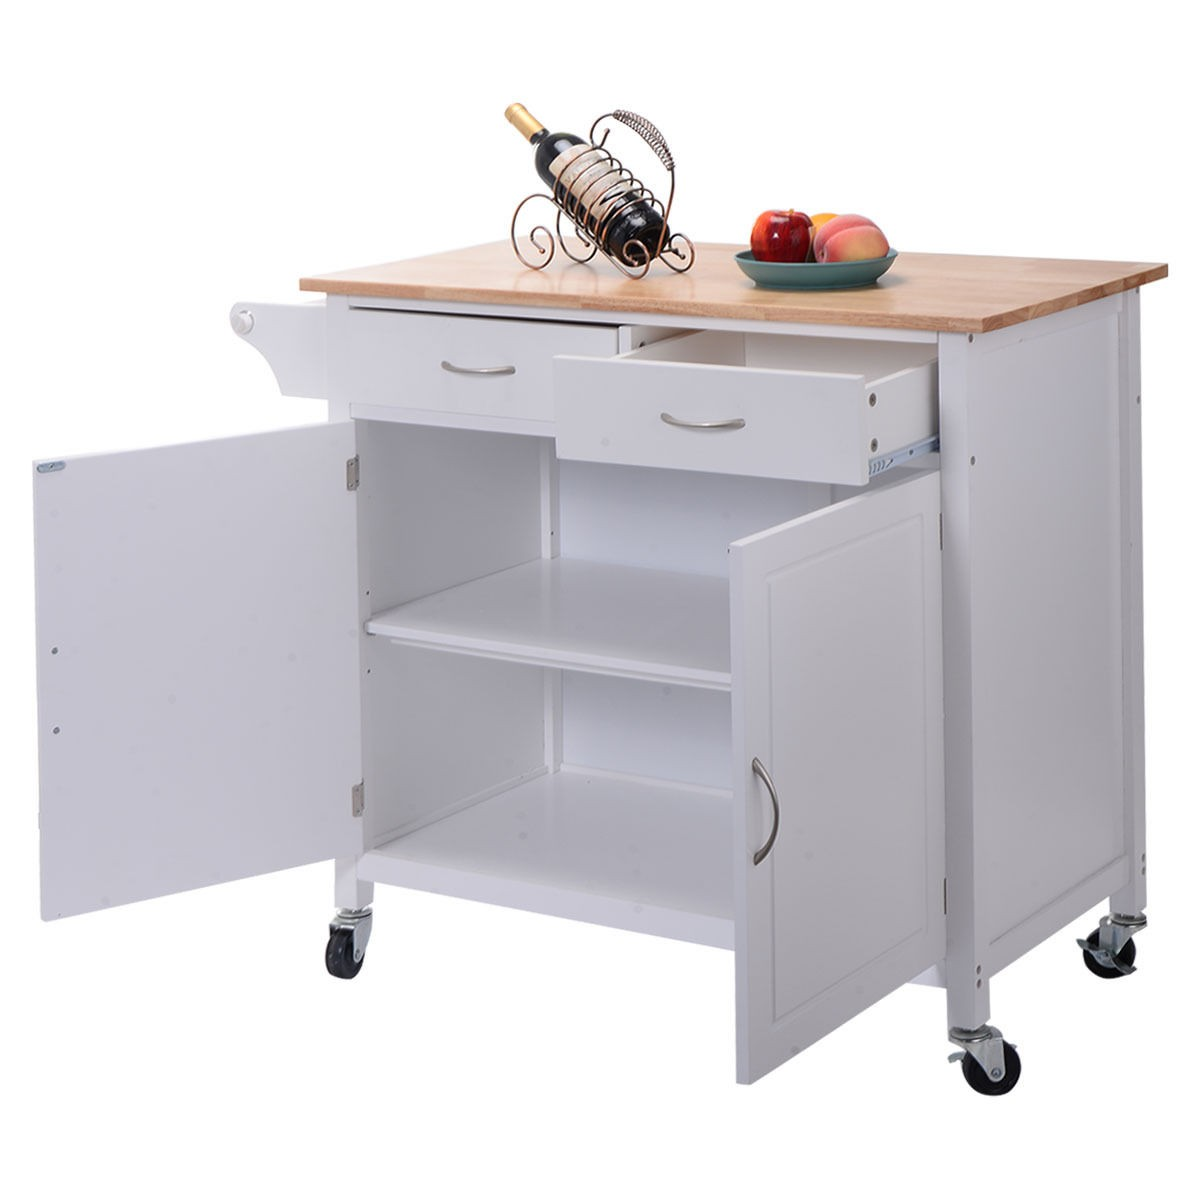 Kitchen Island Black Portable Kitchen Island With Drawers: US Portable Kitchen Rolling Cart Wood Island Serving